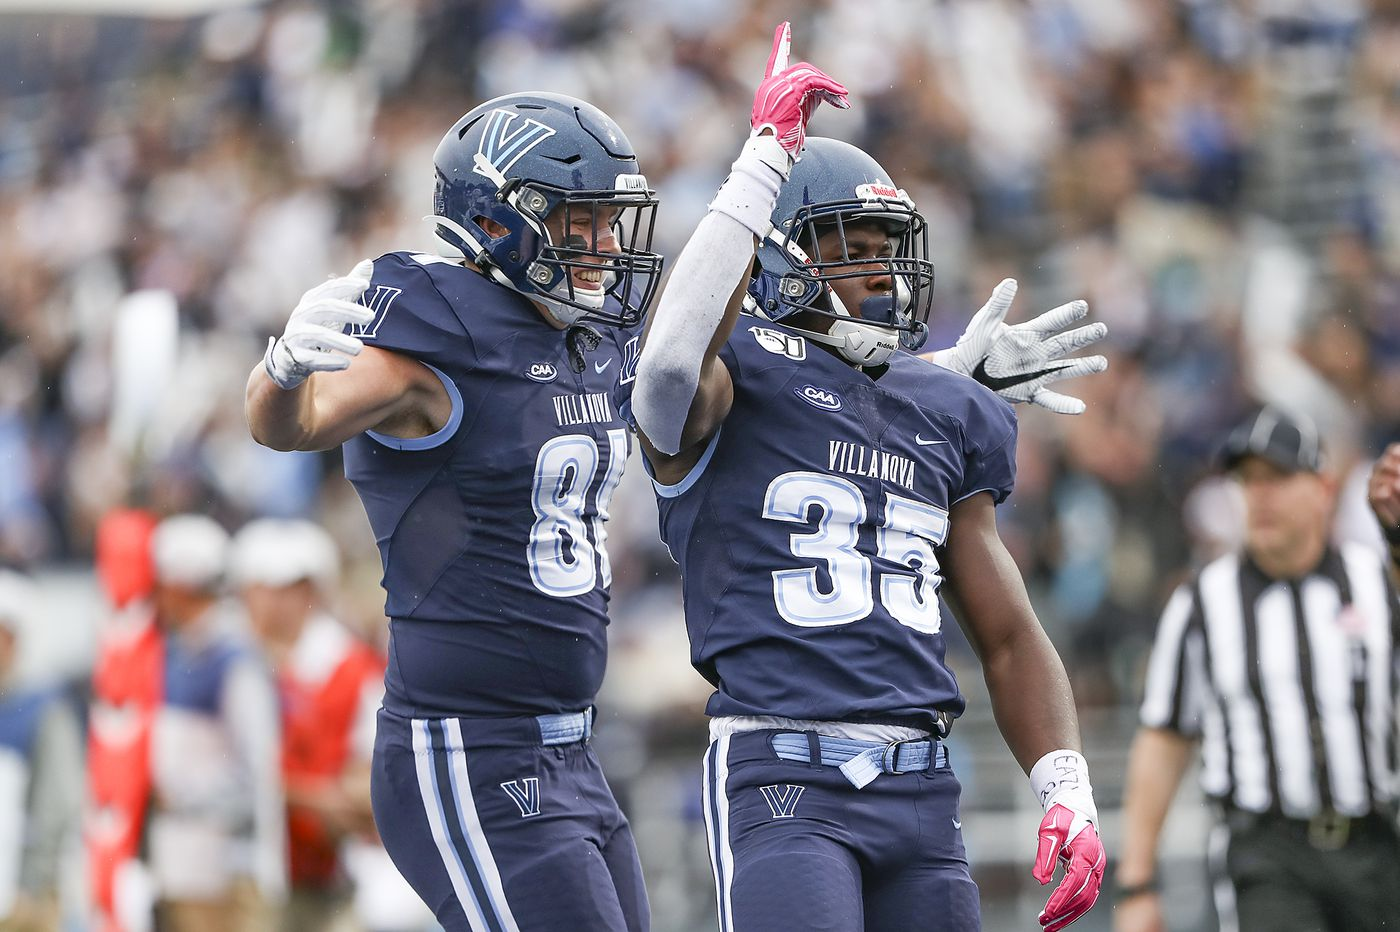 Villanova blows 13-point lead and loses to New Hampshire, 28-20